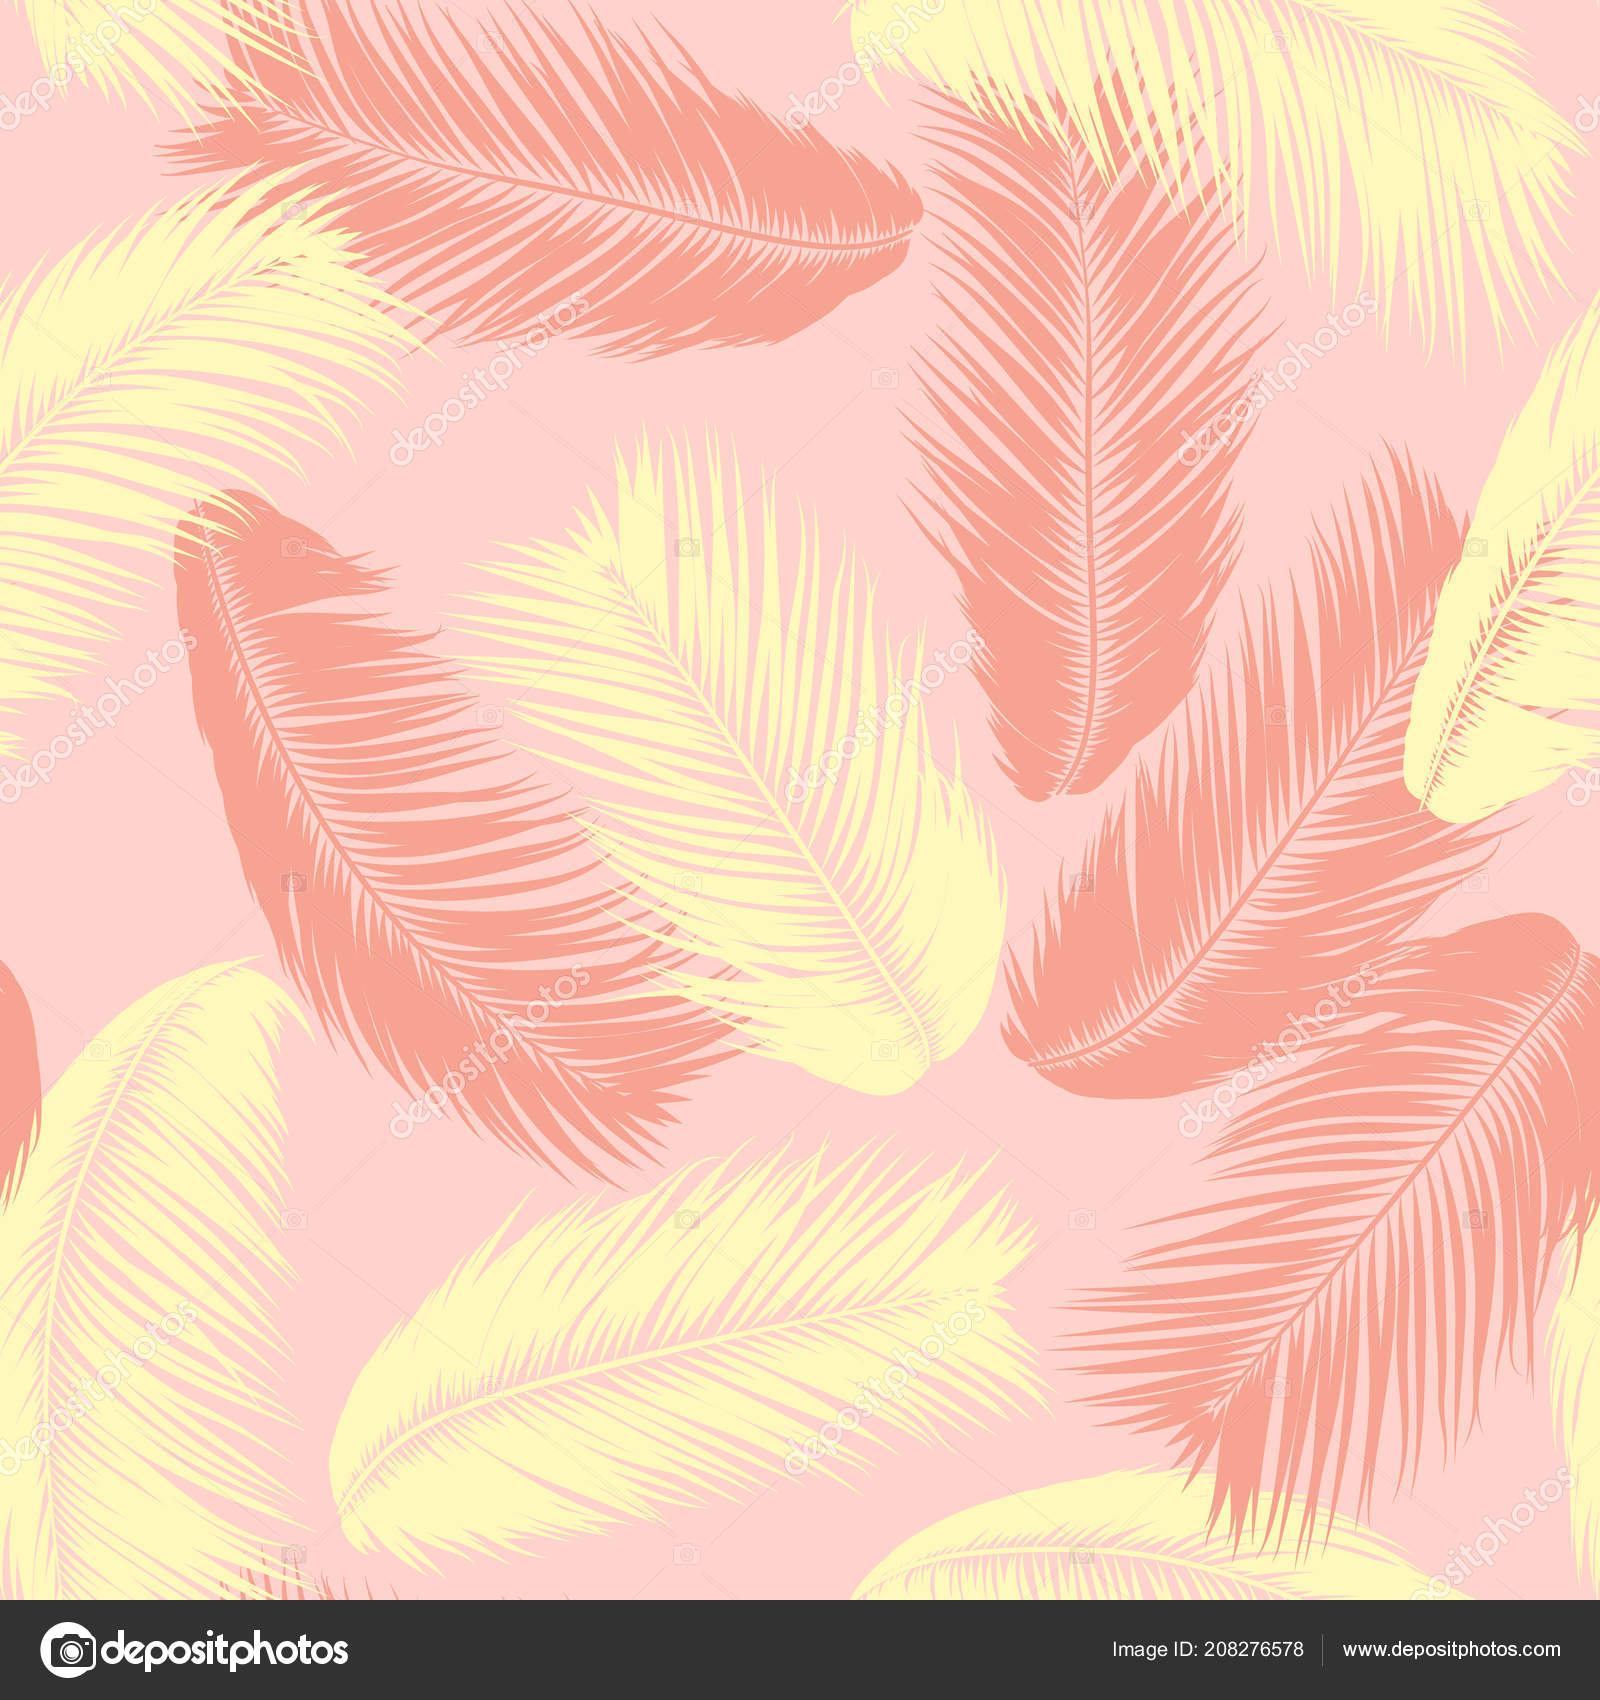 Simple Palm Leaf Drawing Tropical Palm Tree Leaves Vector Seamless Pattern Simple Silhouette Coconut Leaf Sketch Summer Floral Background Jungle Foliage Trendy Wallpaper Of Exotic Palm Tree Leaves For Textile Design